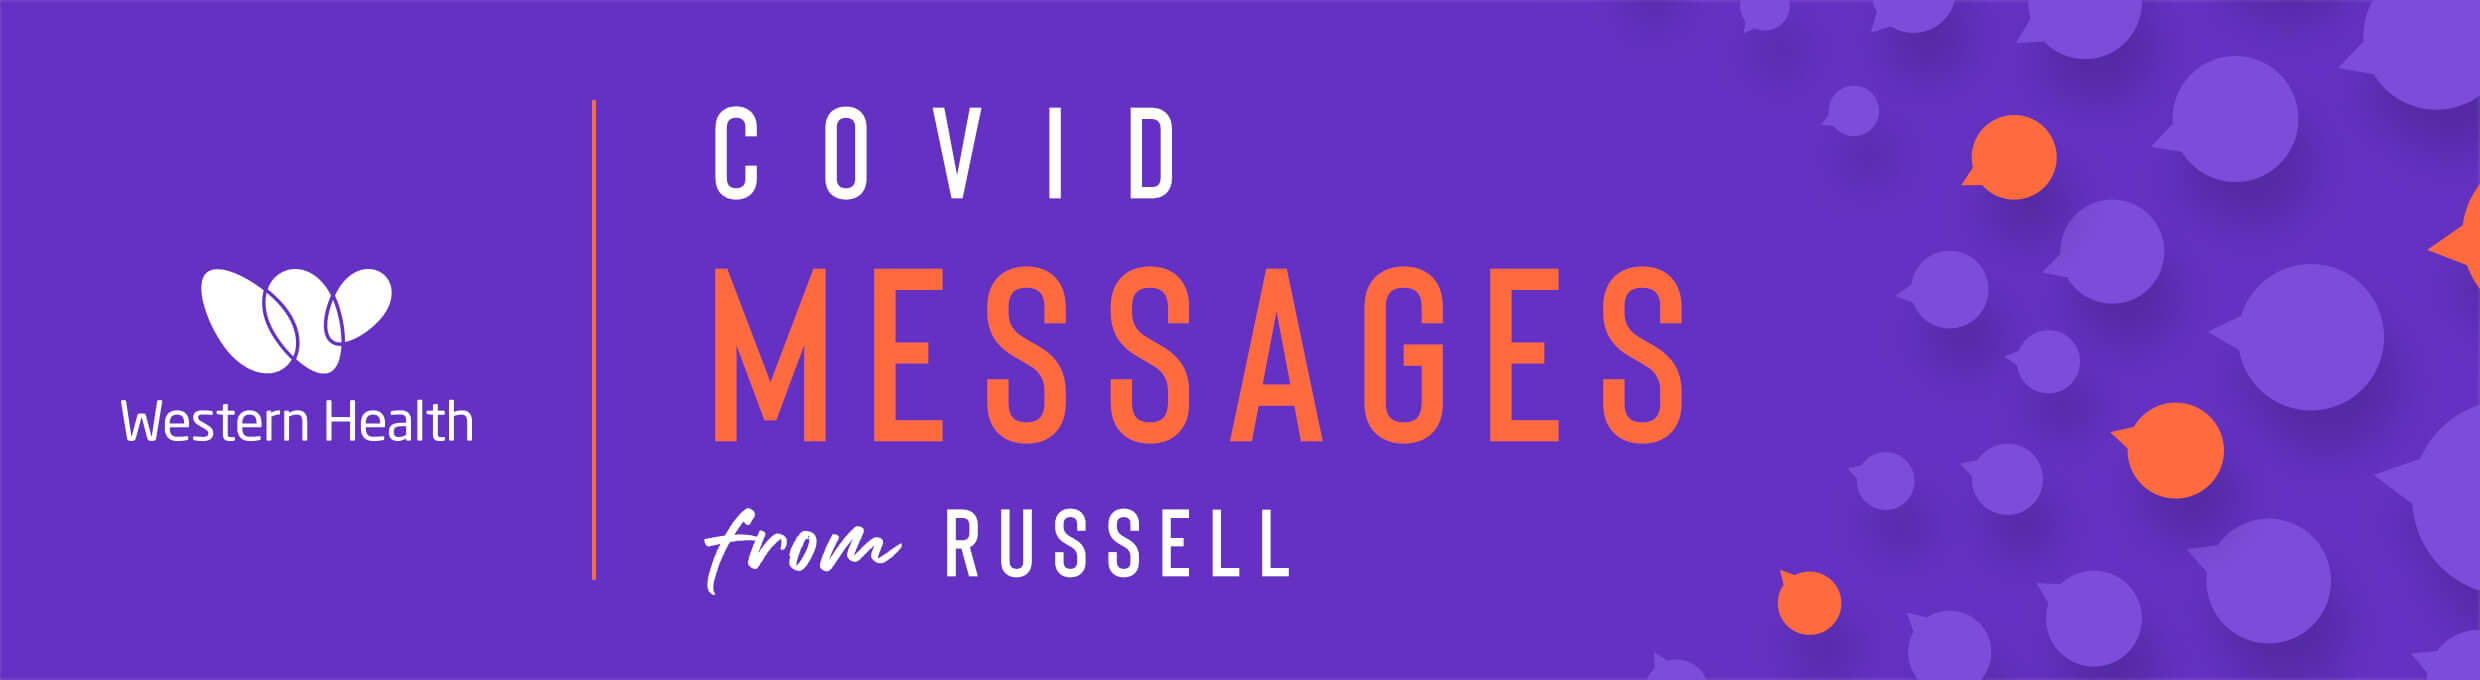 Covid Messages from Russell